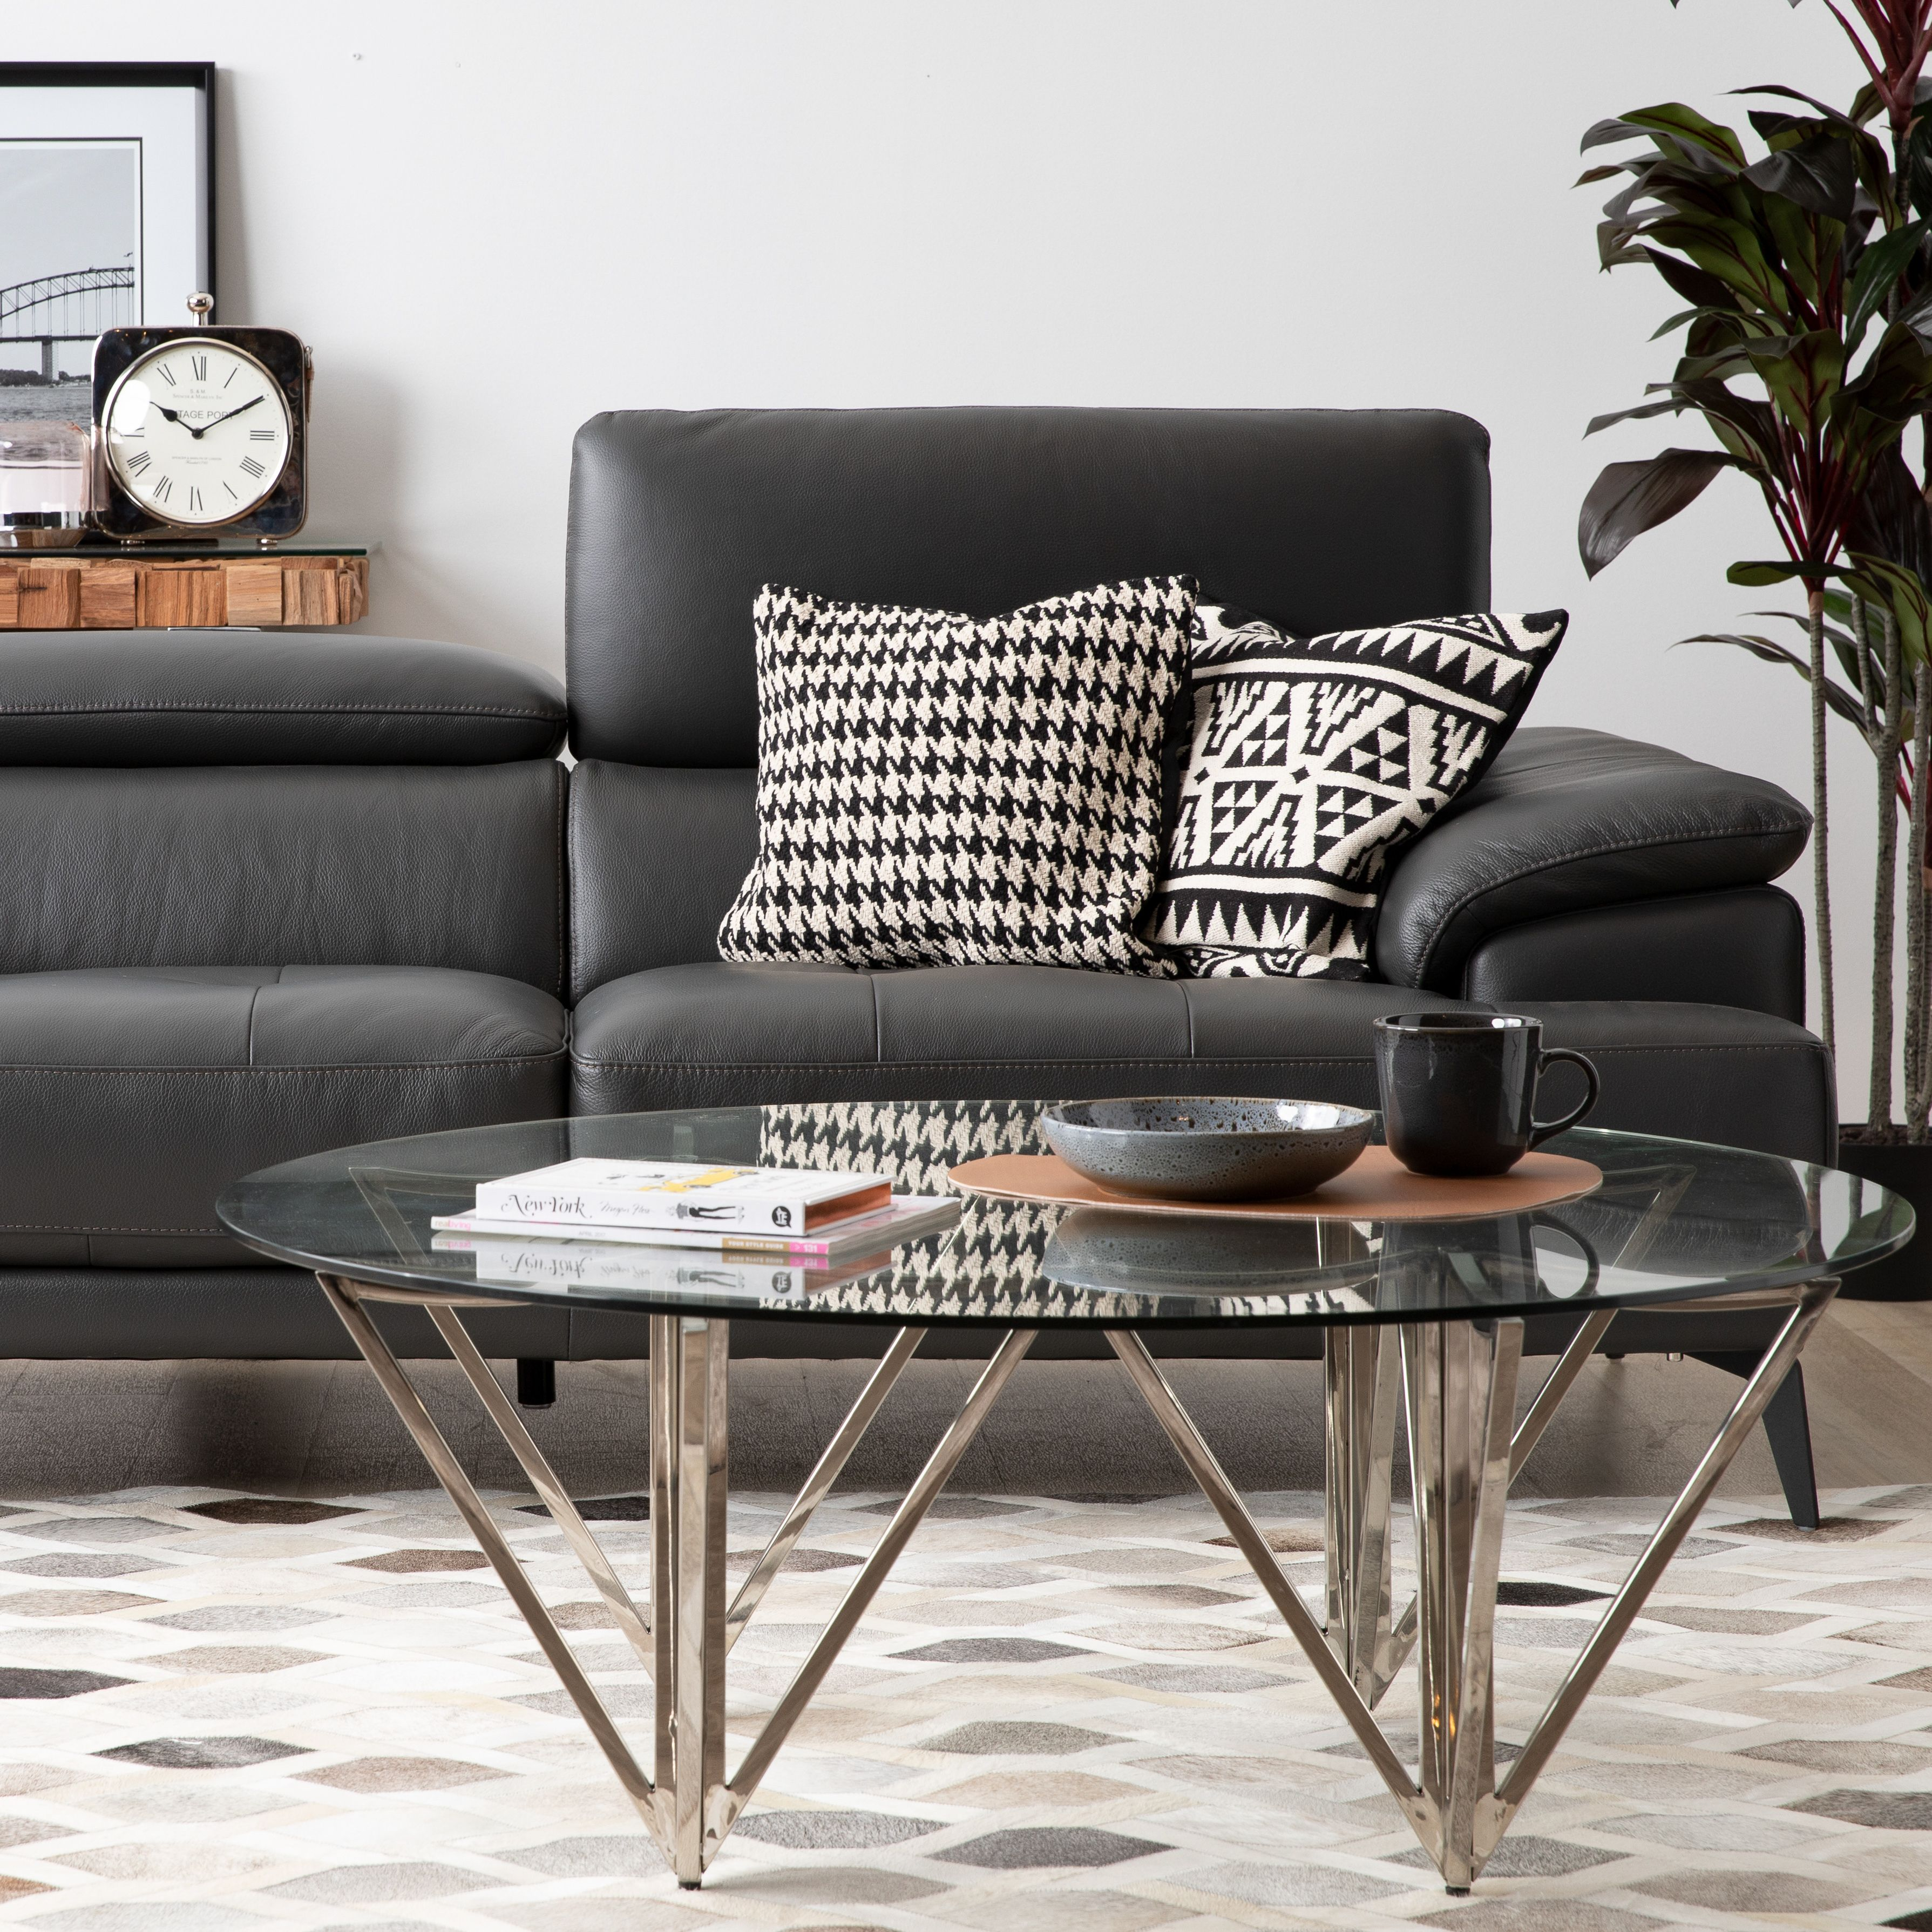 Arrow X Prospect Our Arrow Coffee Table Has A Simple And Modern Design That Pairs Beautifully With Our Prospect Sofa Coffee Table Table Glass Top Table